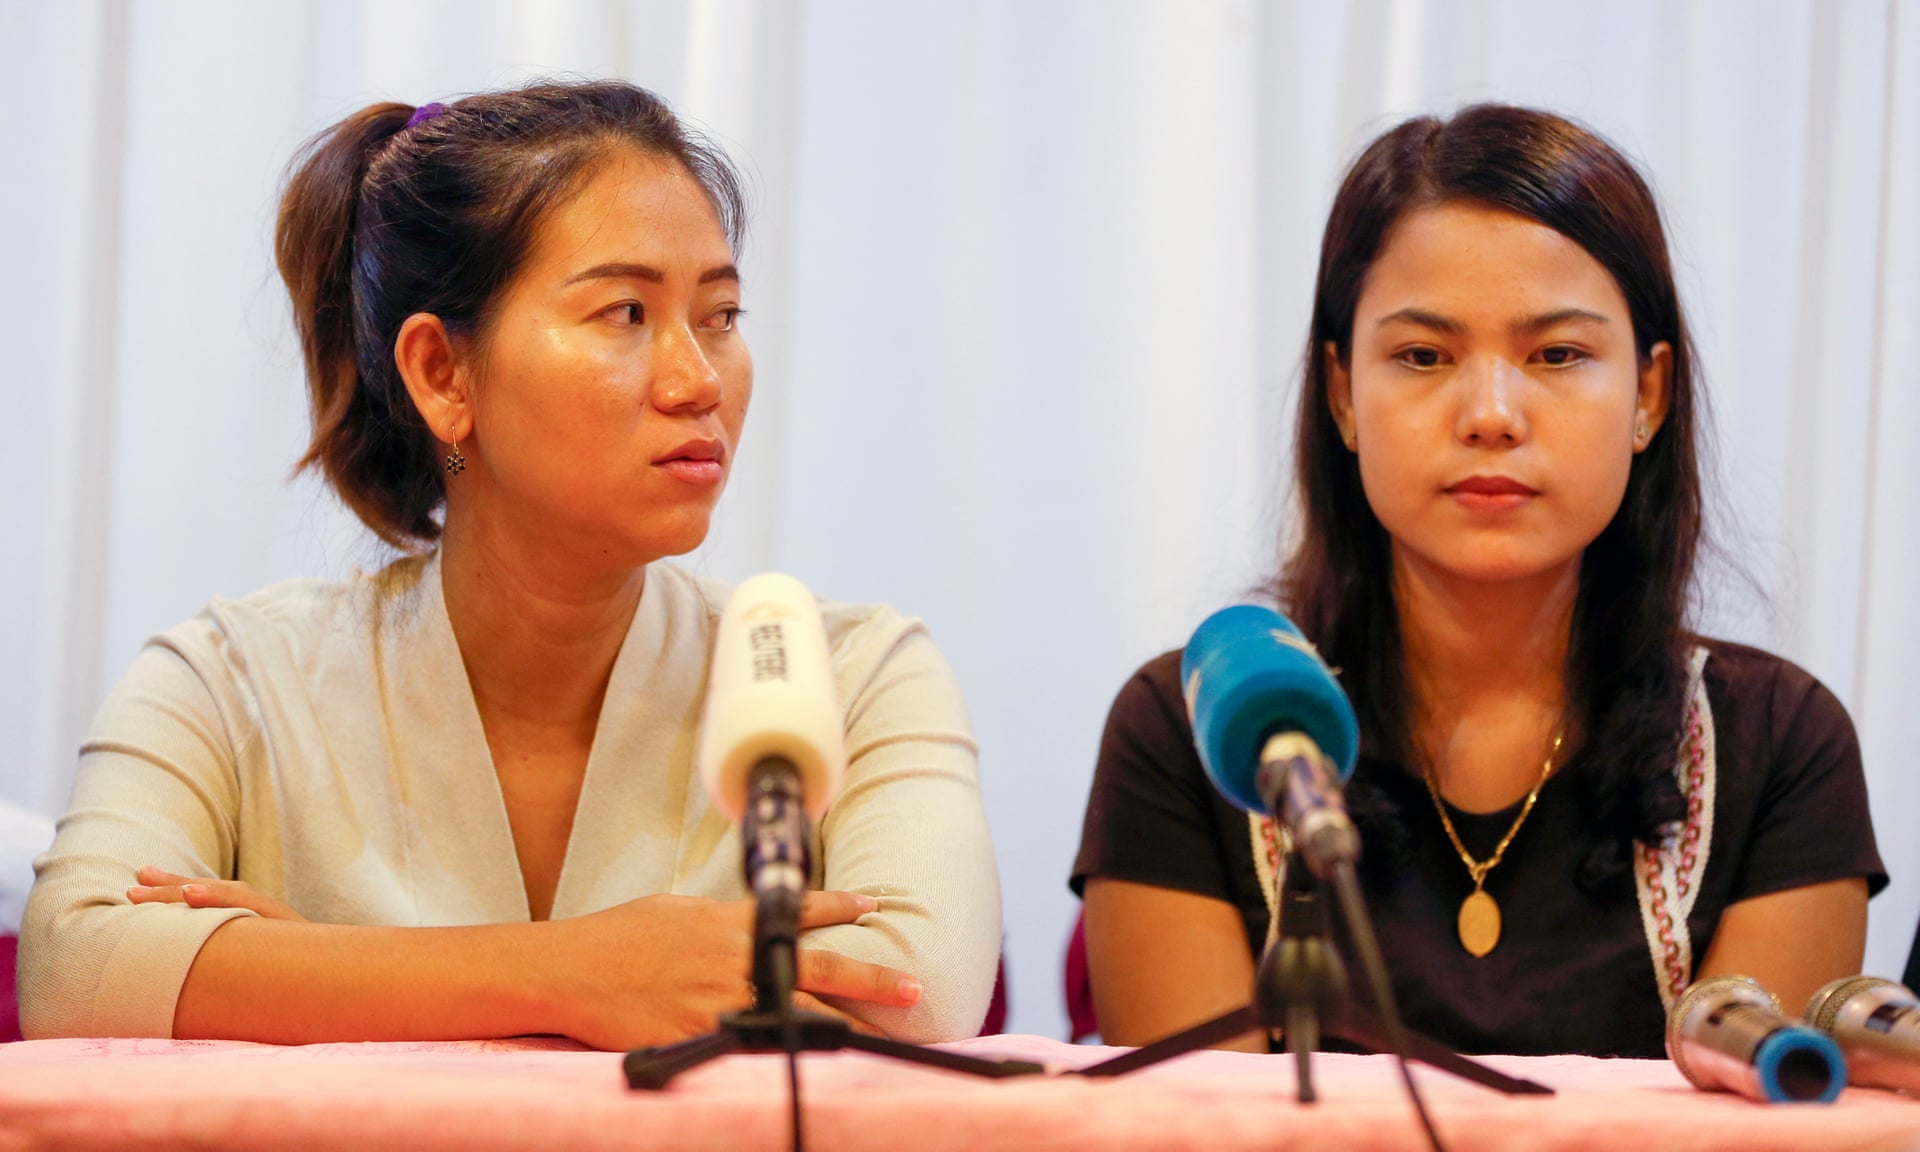 Pan Ei Mon (left) and Chit Su Win speak at a press conference in Yangon, Myanmar. Photograph: Lynn Bo Bo/EPA